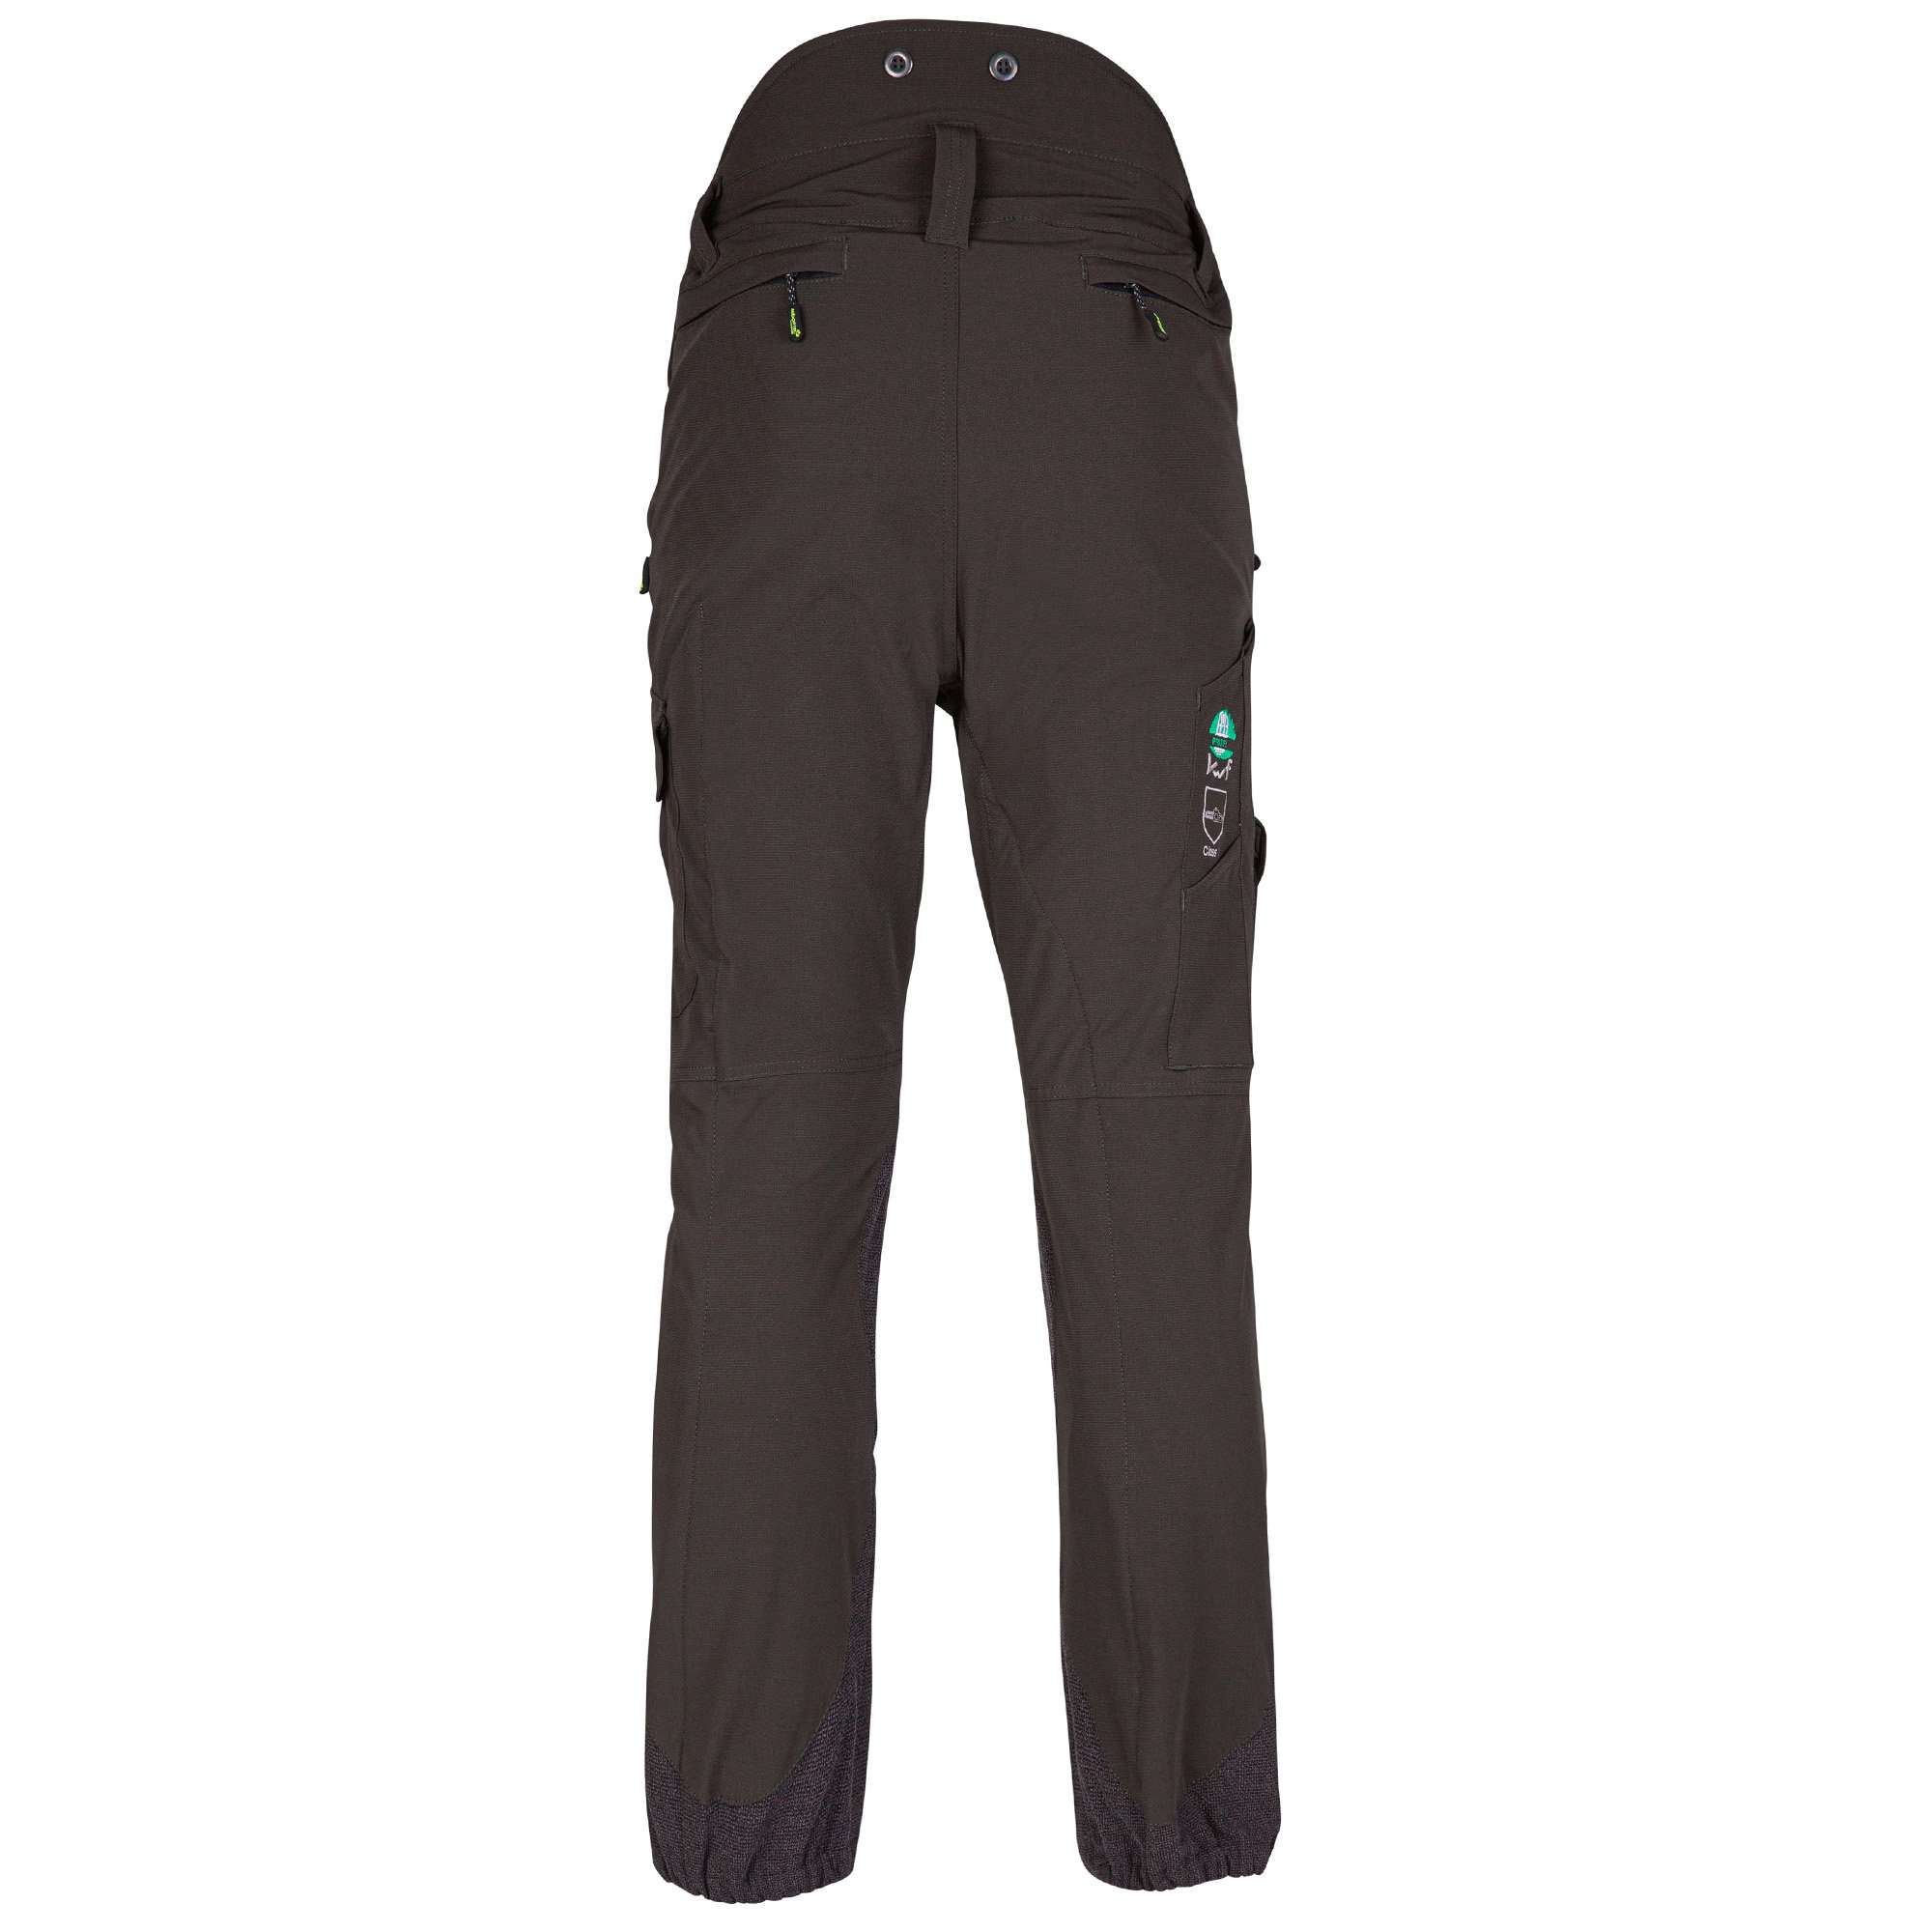 AT4010 Breatheflex Type A Class 1 Chainsaw Trousers - Olive - Arbortec Forestwear